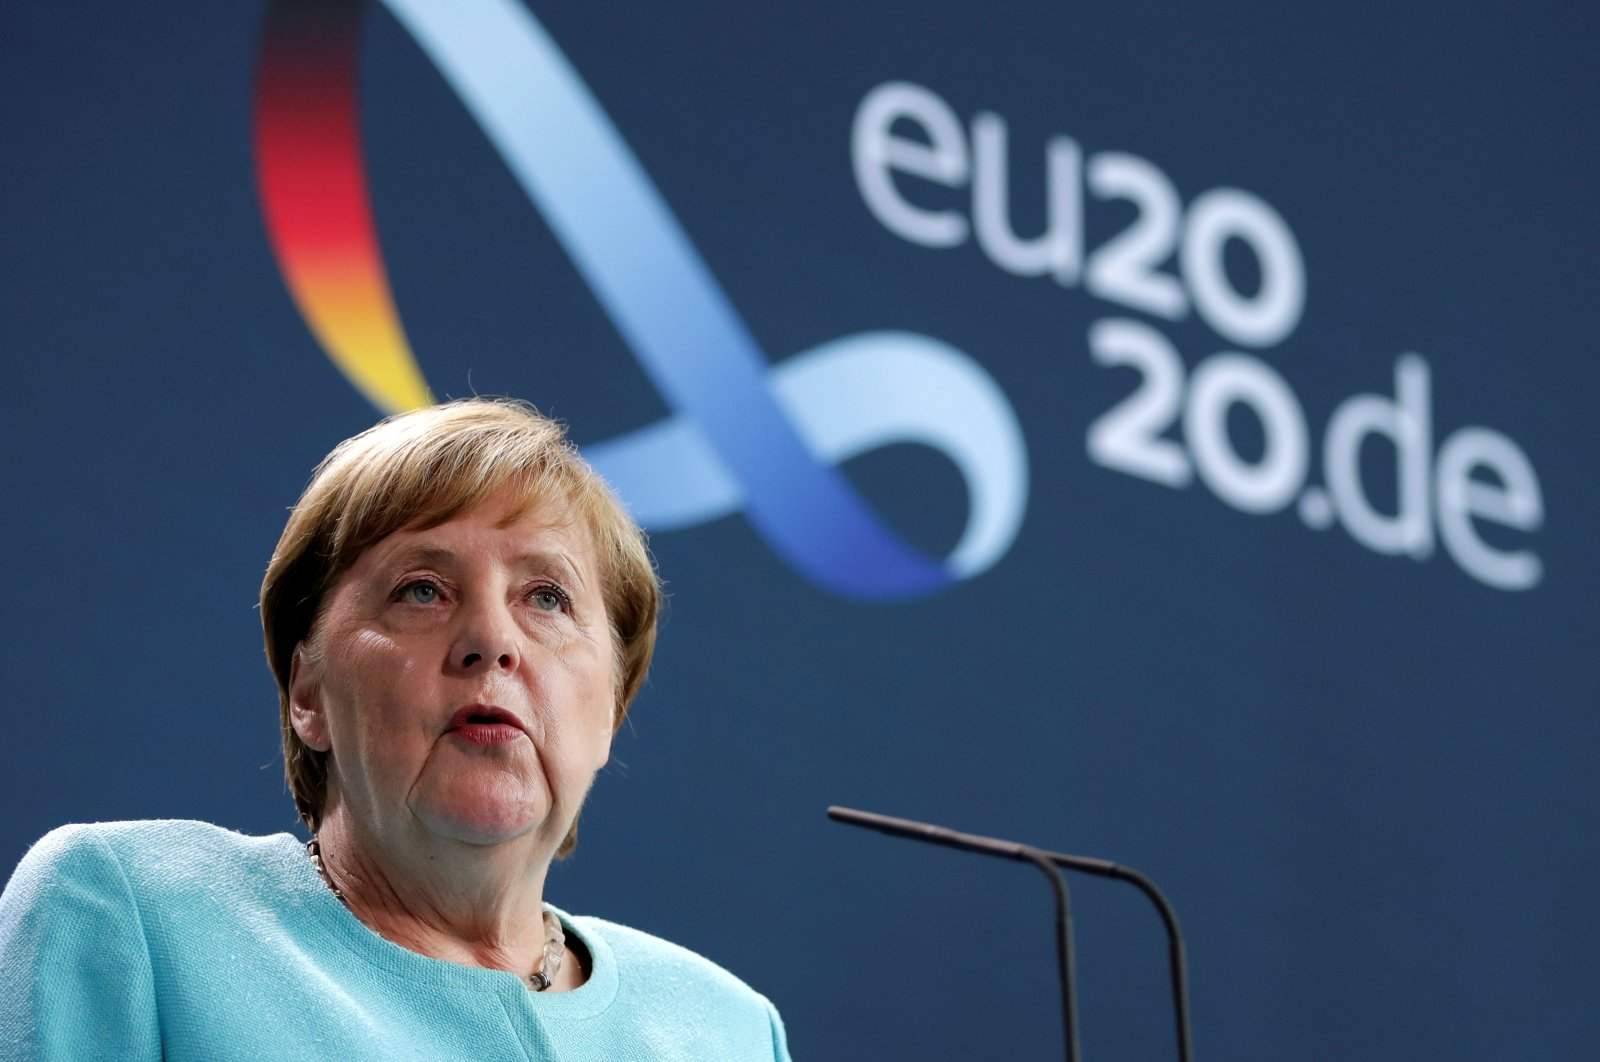 German Chancellor Angela Merkel speaks to reporters after EU leaders held a video summit on the situation in Belarus, at the Chancellery in Berlin, August 19, 2020.  (REUTERS)